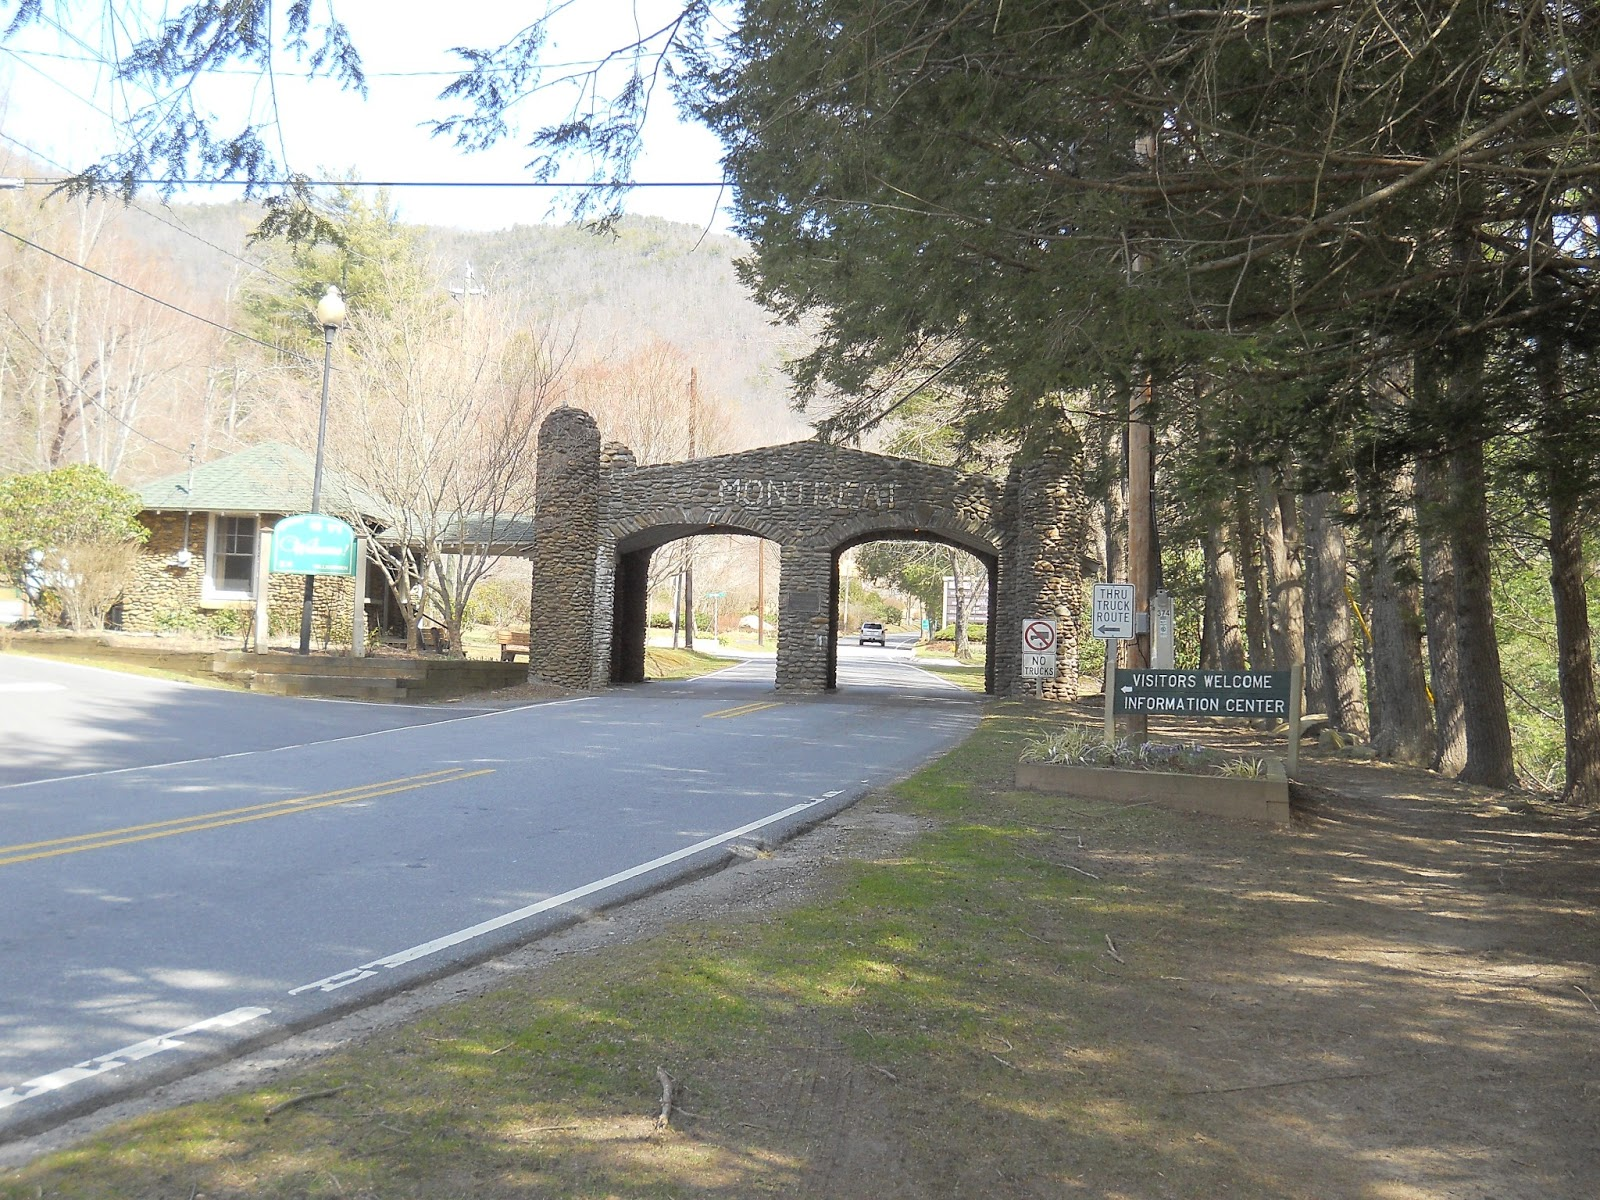 montreat single guys Montreat conference center • montreat, nc  but there are a few singles on the registration form, indicate guys who you would prefer to room with (feel free to .